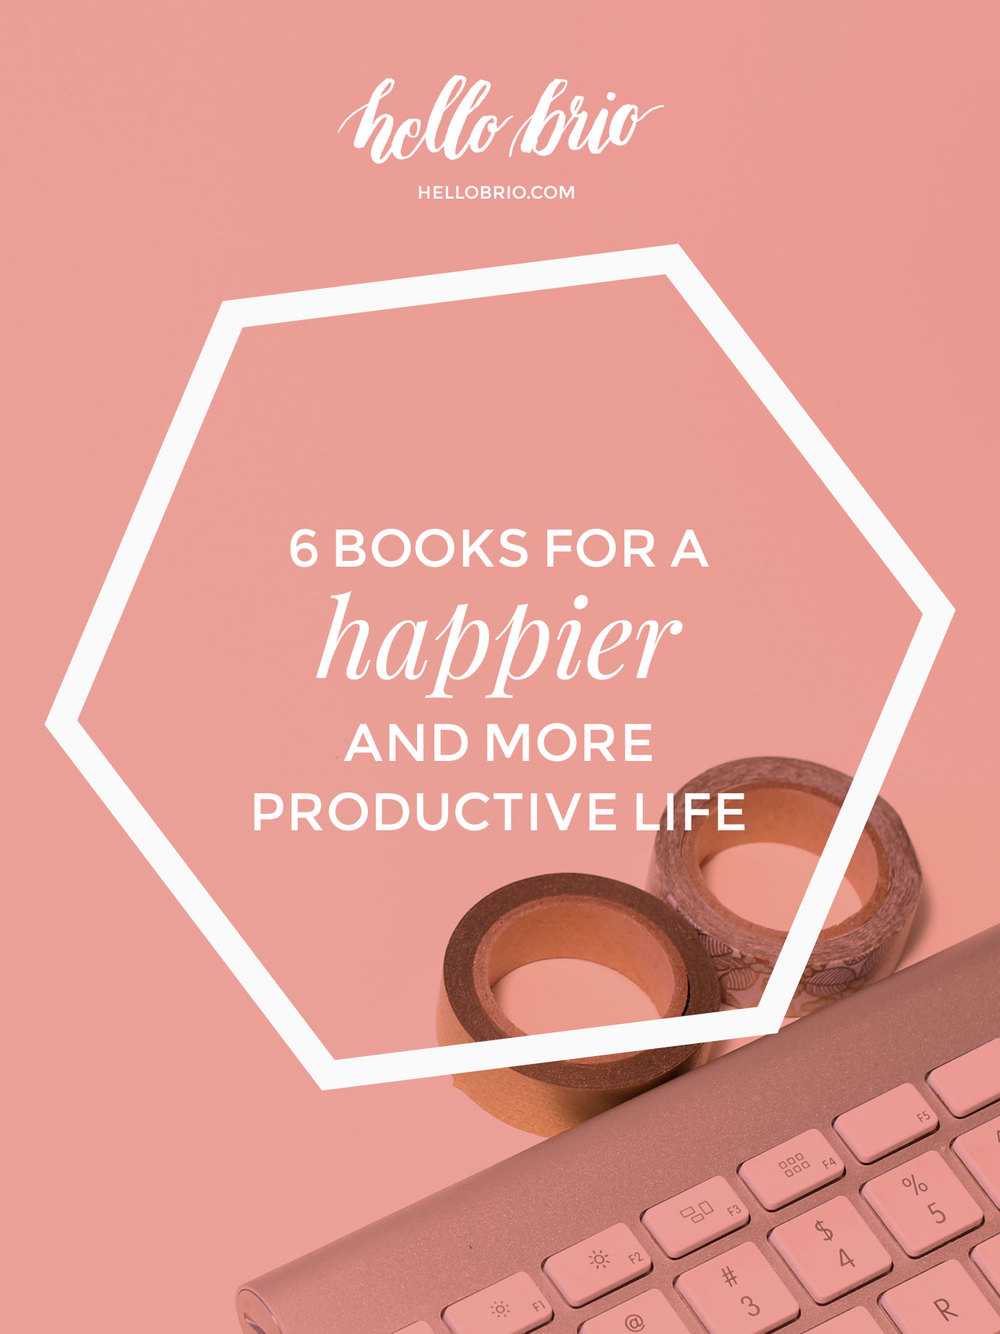 6 books for a happier and more productive life